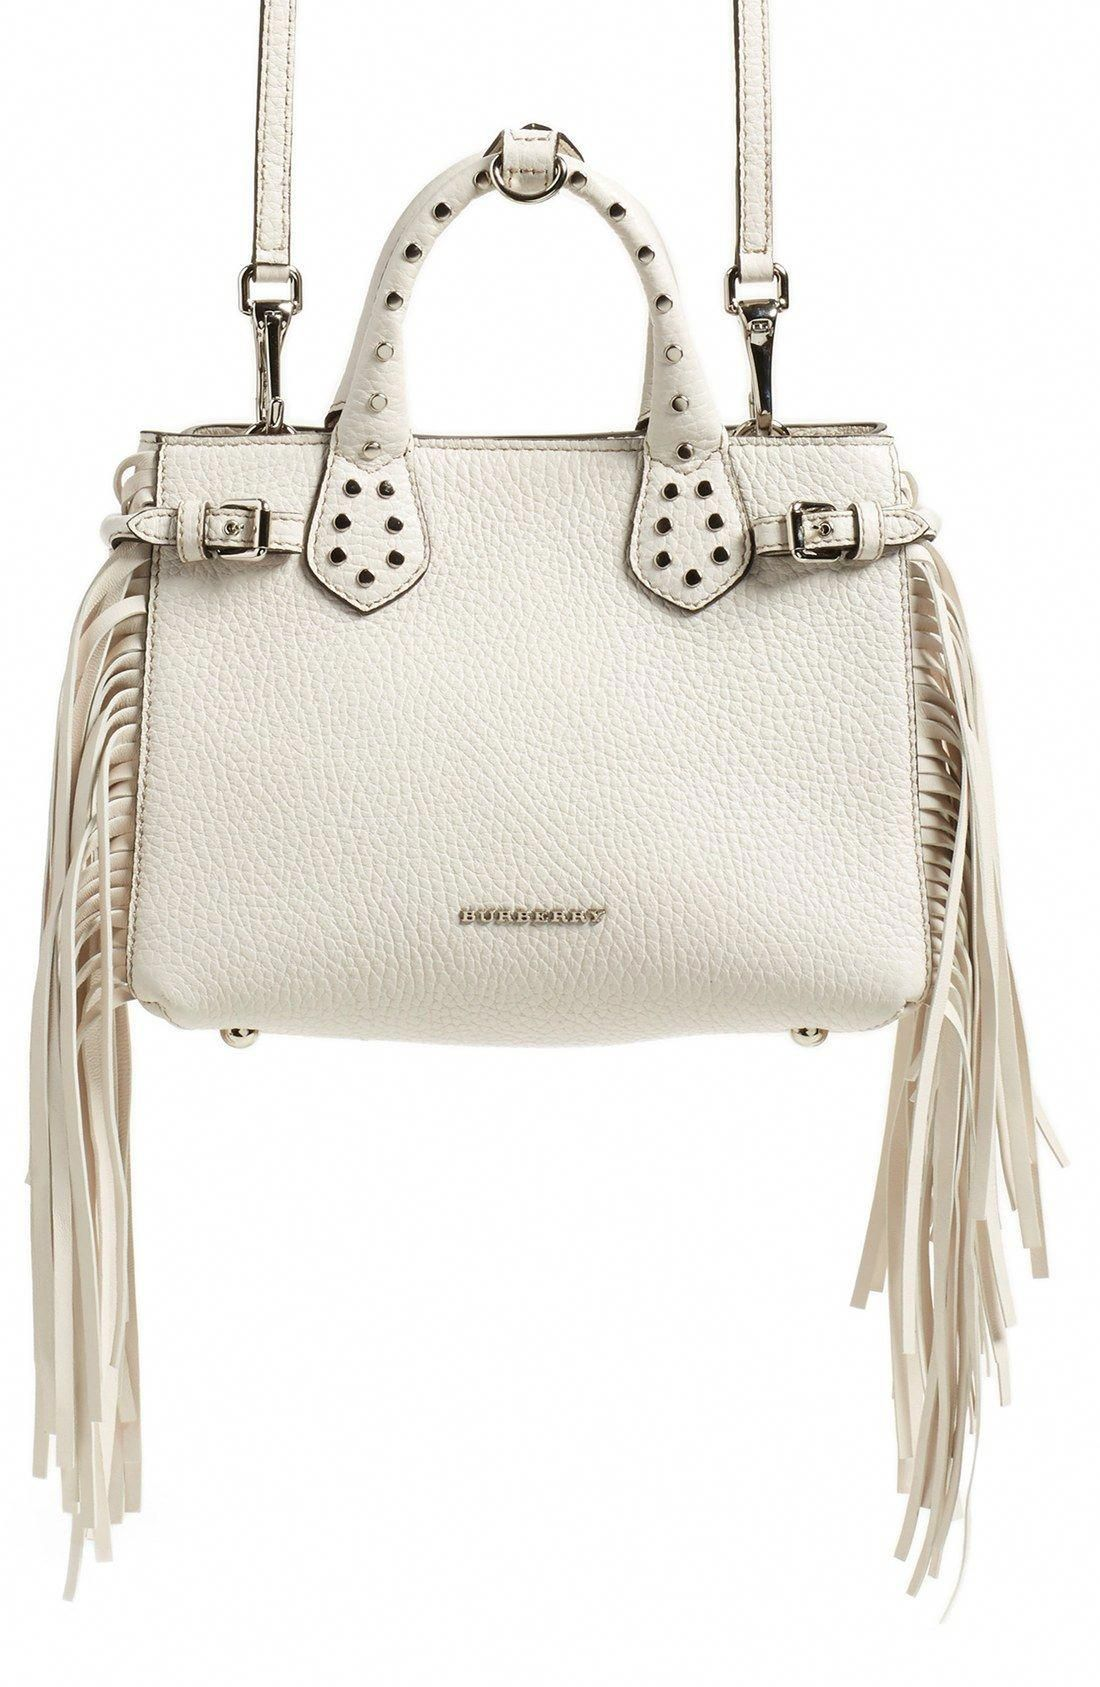 108eaad71759 Burberry  Baby Banner  Fringe Leather Satchel  Burberryhandbags ...